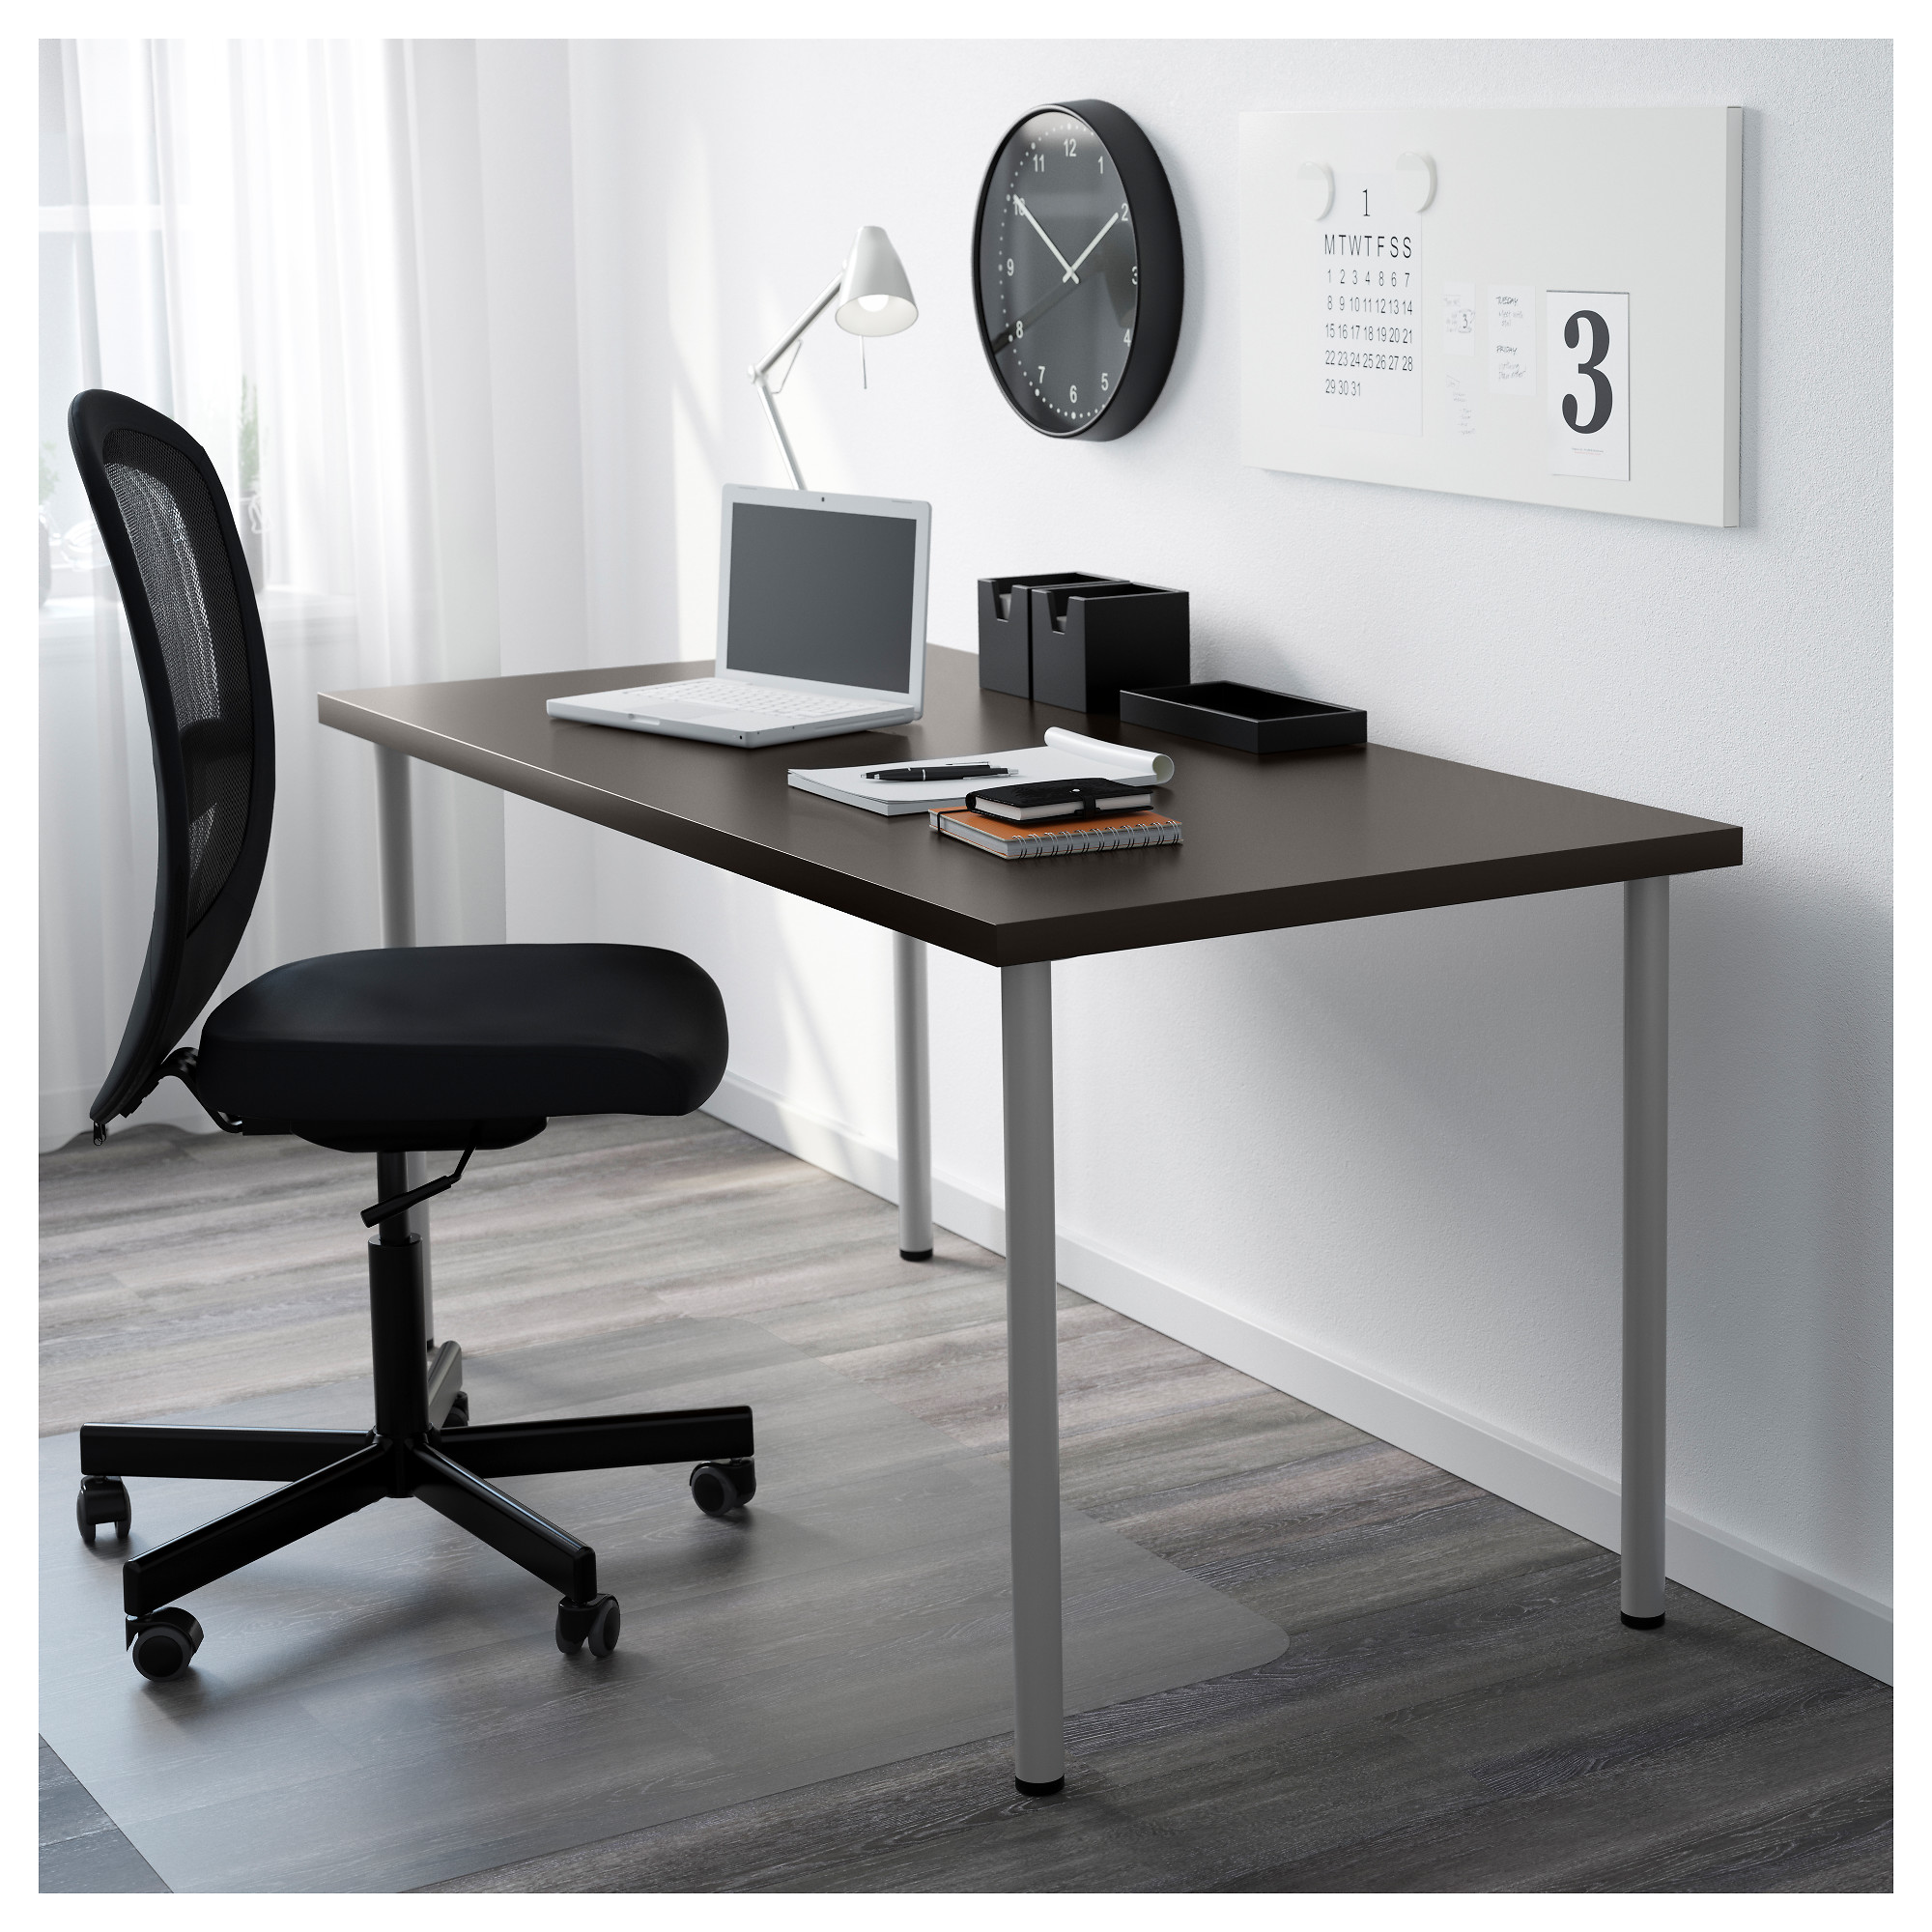 ikea desks office. Ikea Desks Office F